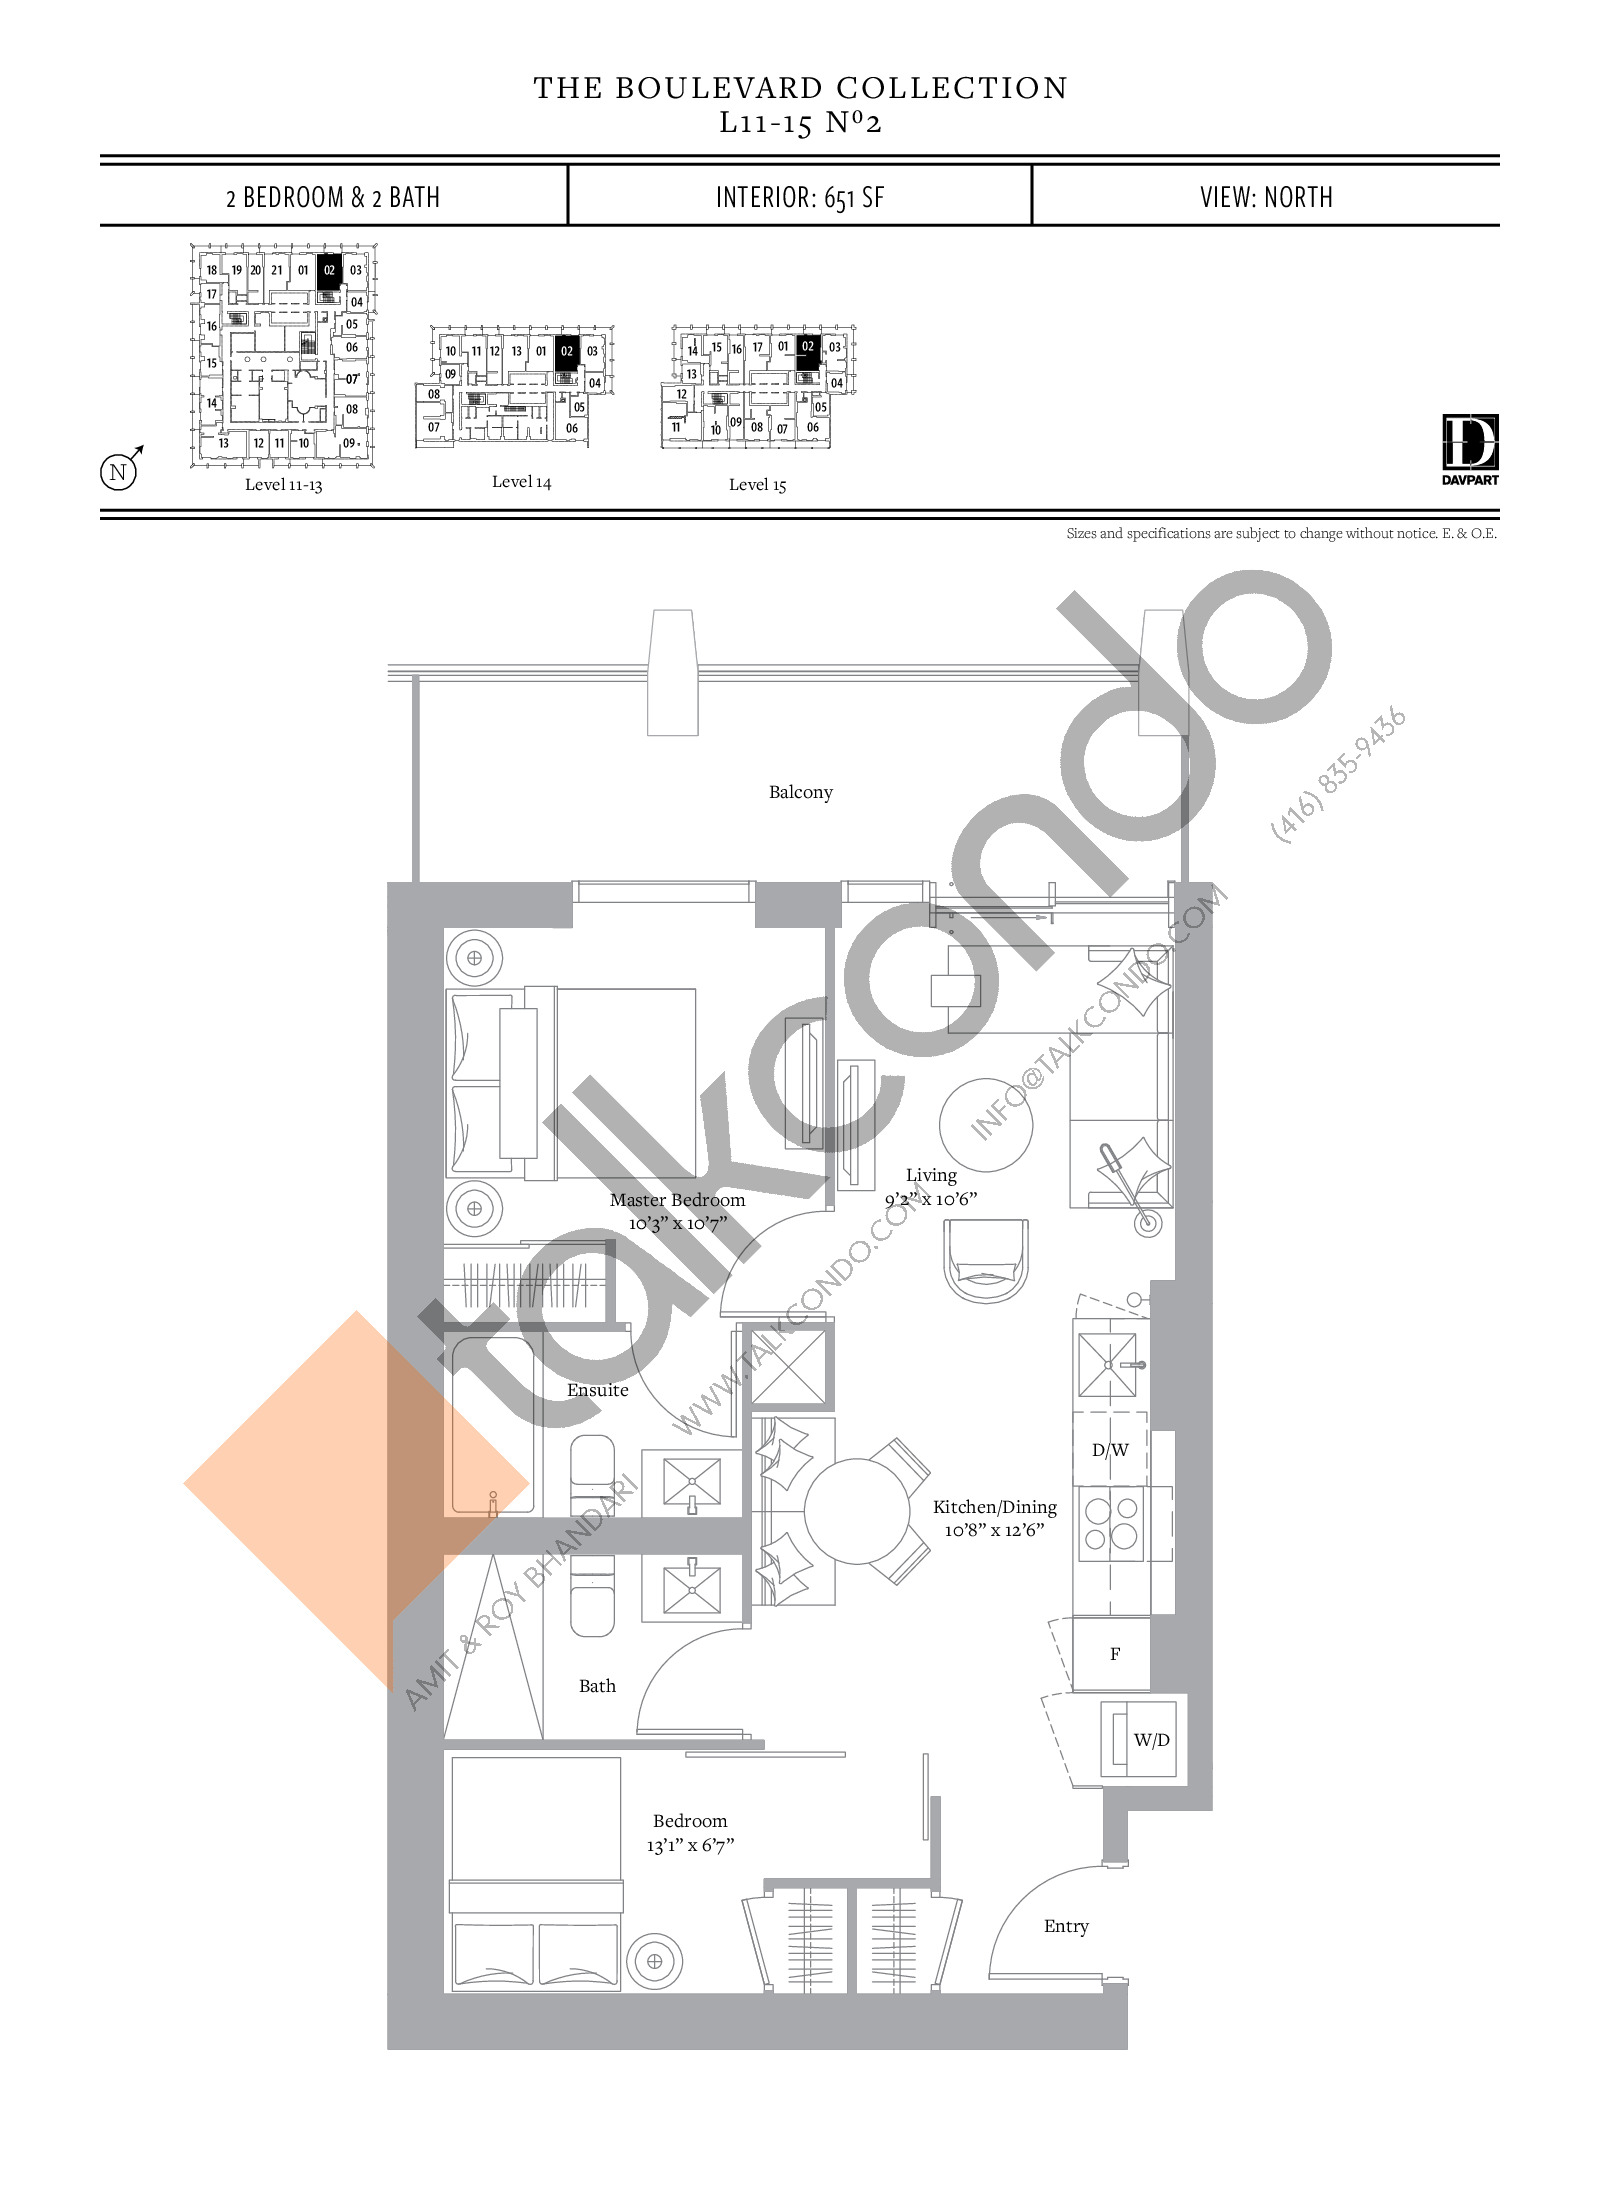 No 2 - The Boulevard Collection Floor Plan at The United Bldg. Condos - 651 sq.ft